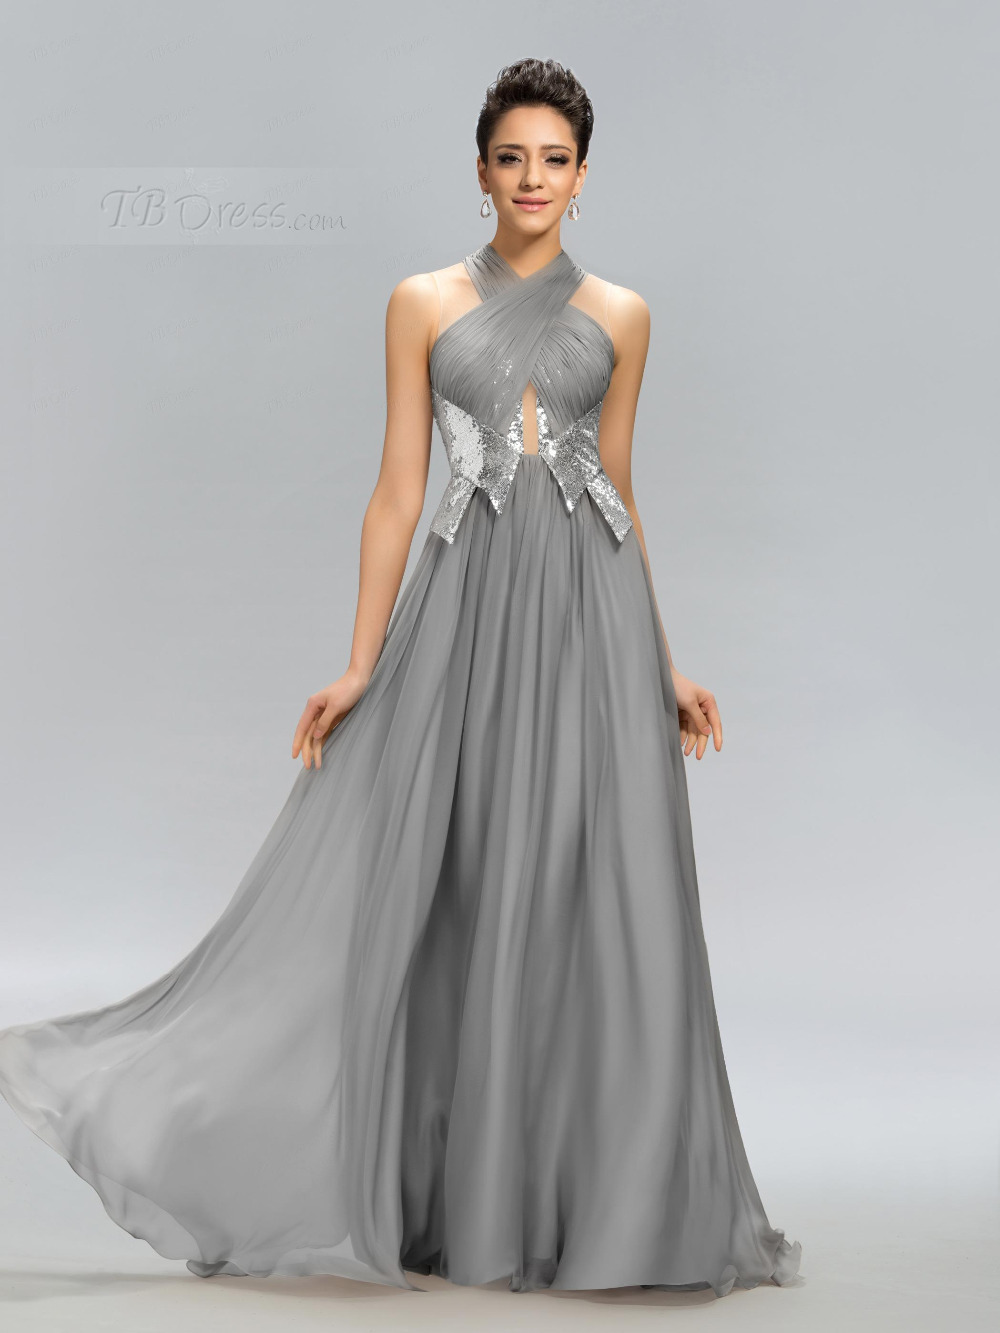 Grey silvery paillette long bridesmaid dresses sleeveless halter grey silvery paillette long bridesmaid dresses sleeveless halter floor length vestidos longo madrinha shining bridesmaid dress in bridesmaid dresses from ombrellifo Gallery